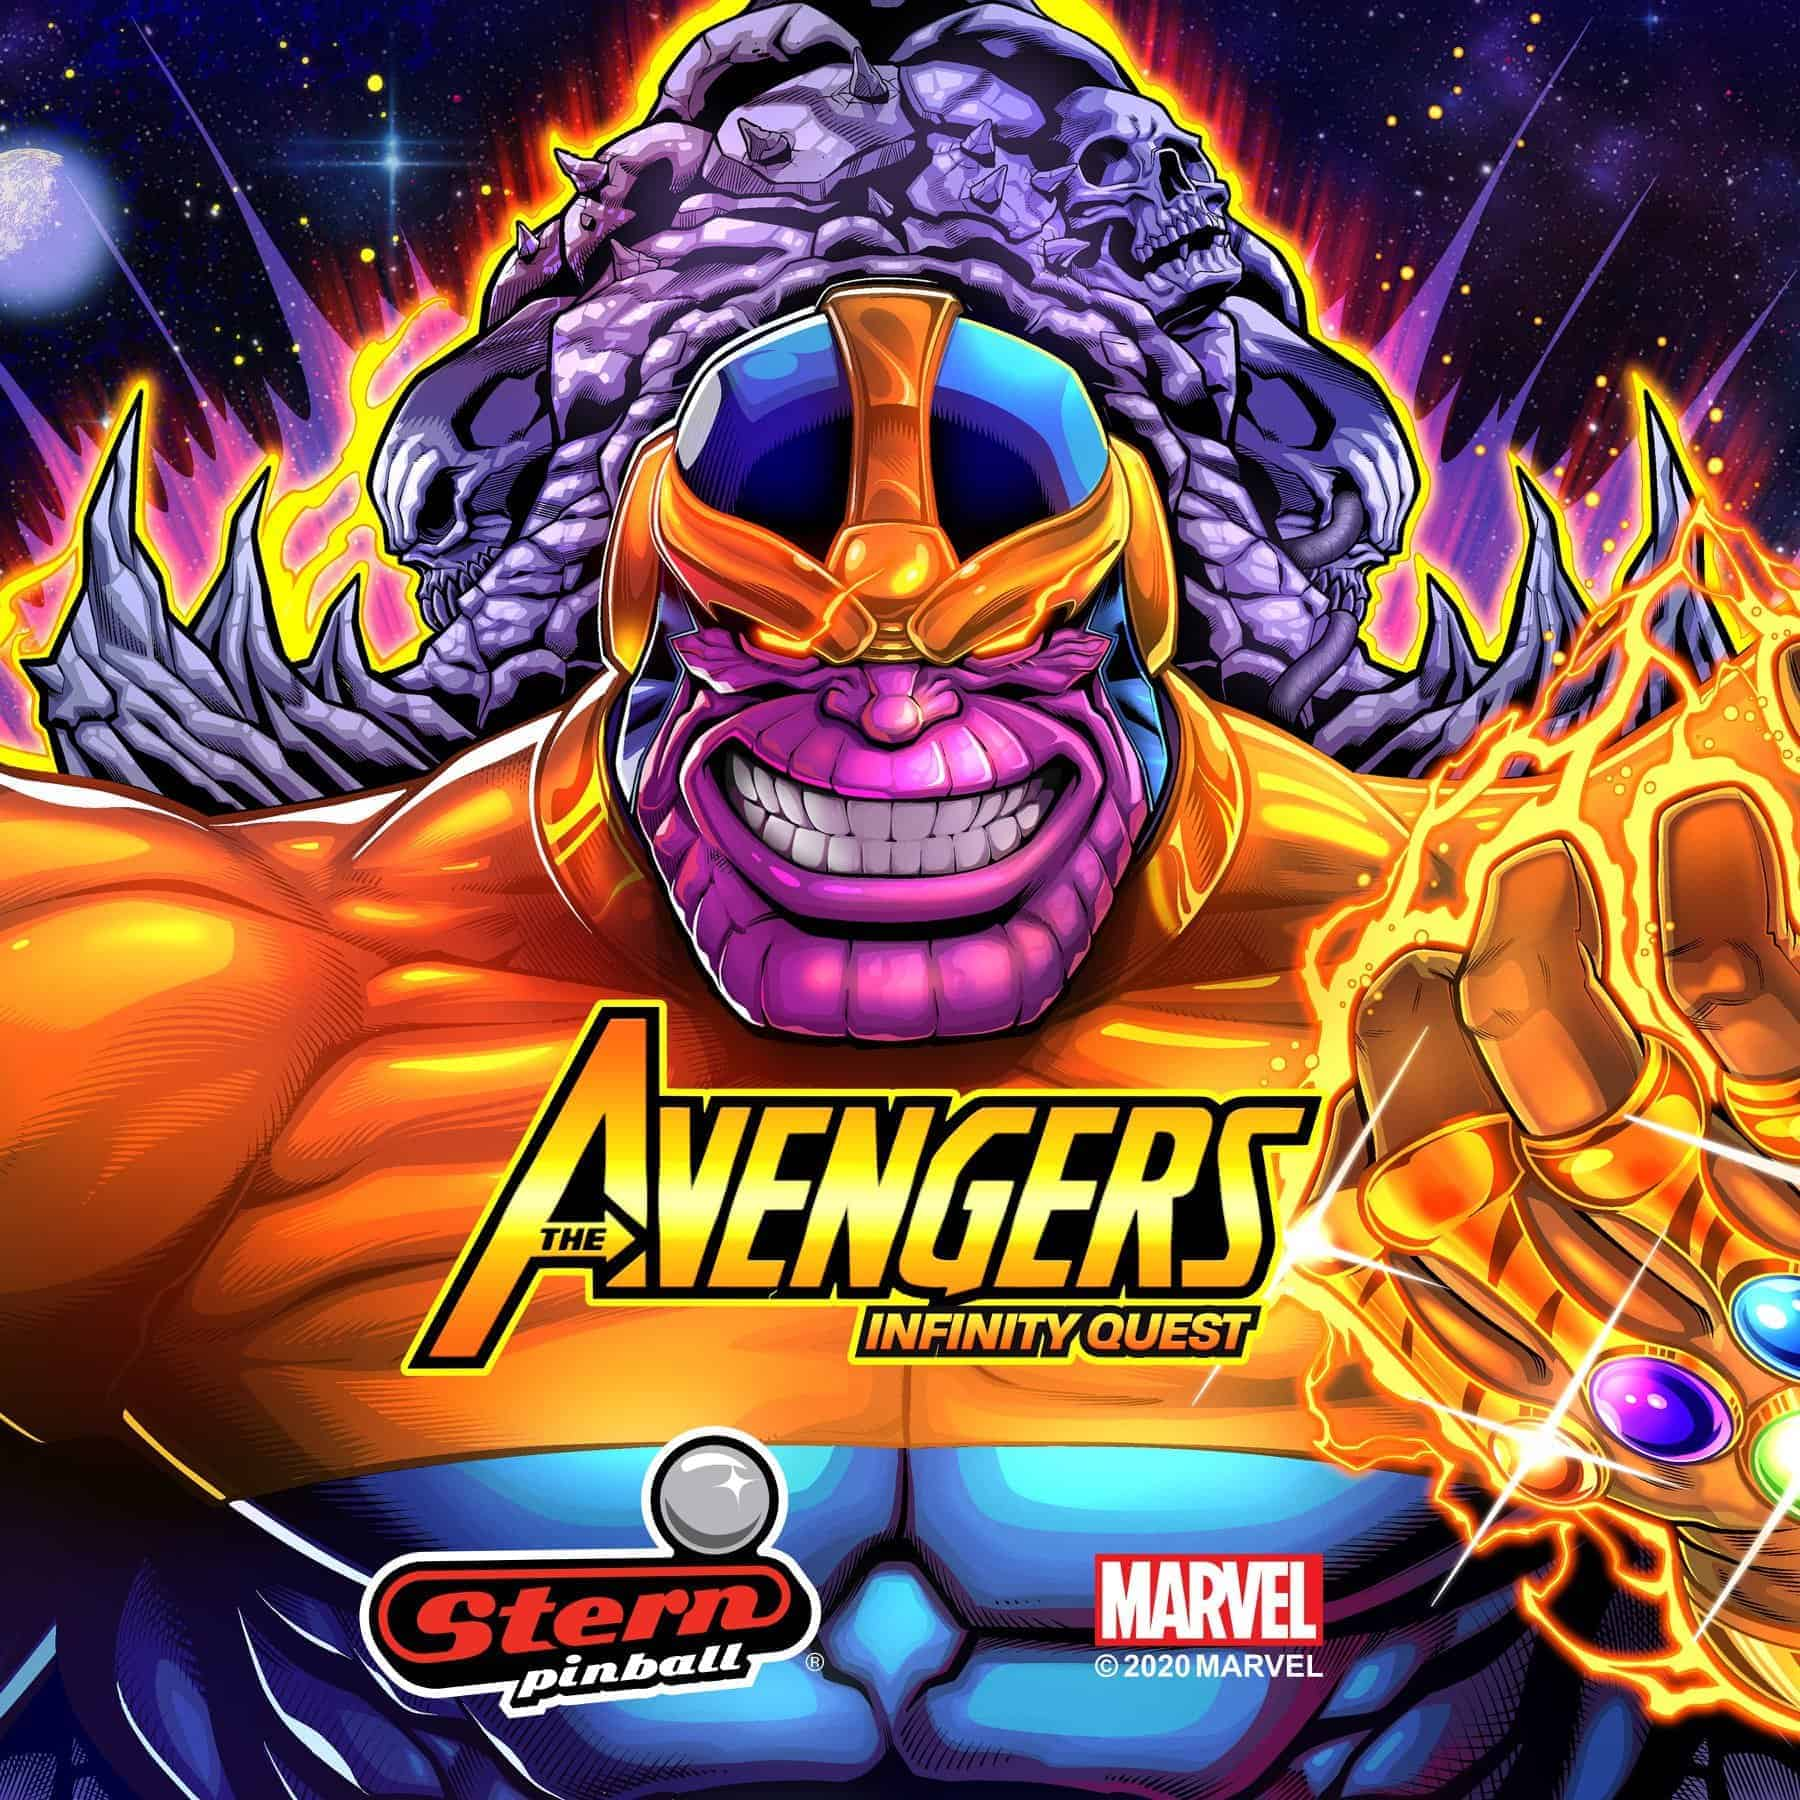 Avengers Infinity Quest Deep Dive with Danger